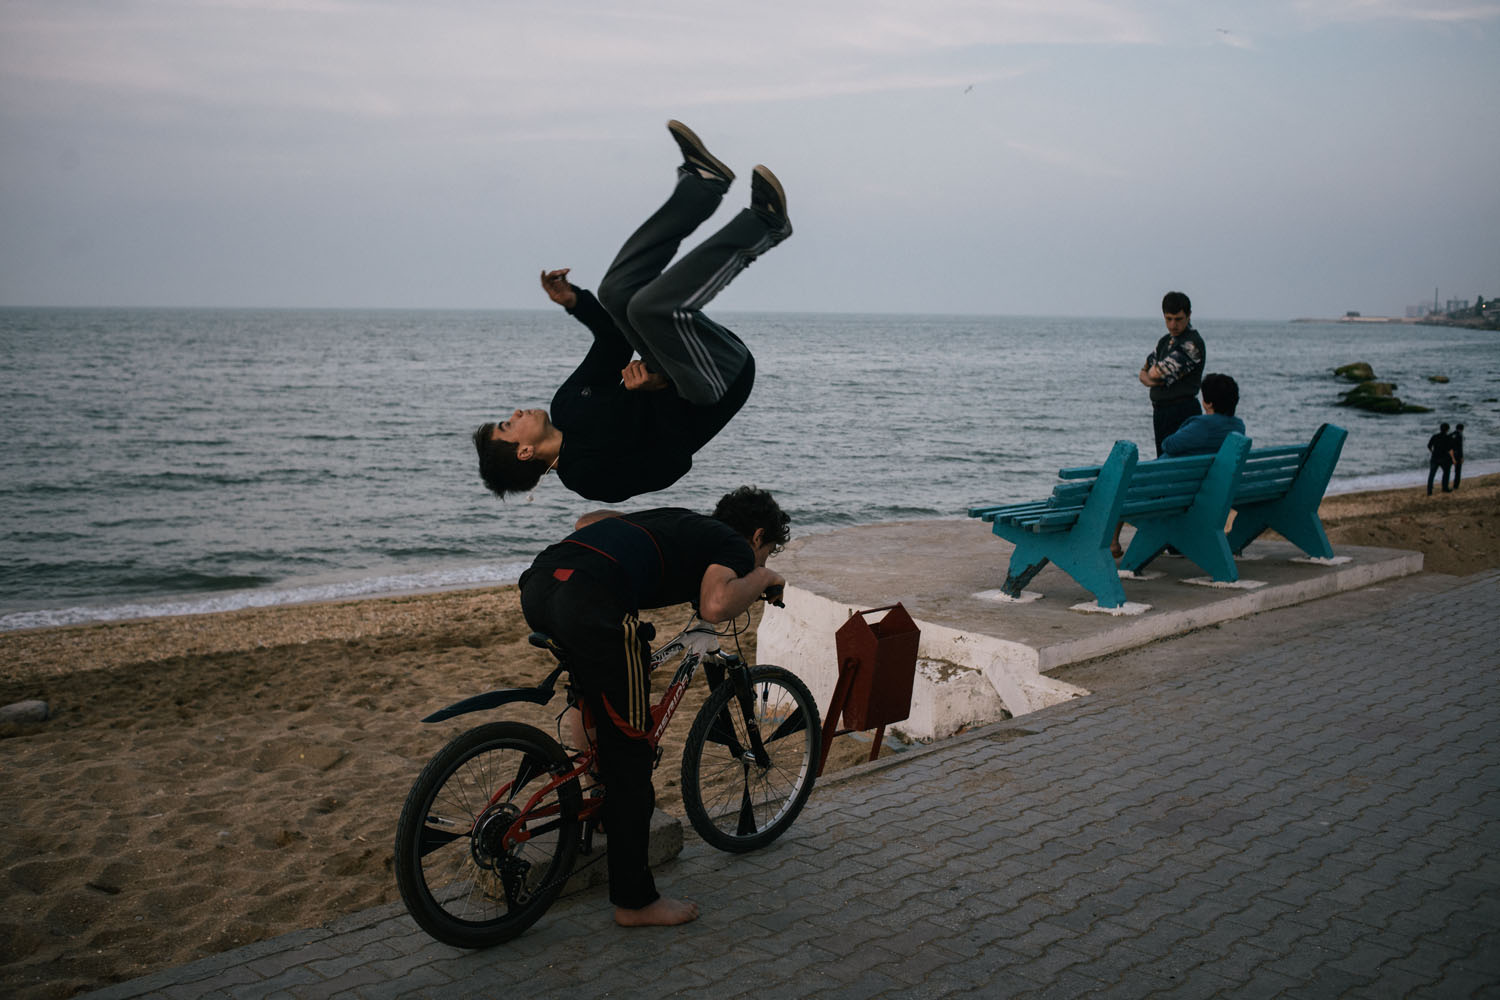 Young boys perform parkour on the beach in Makhachkala.